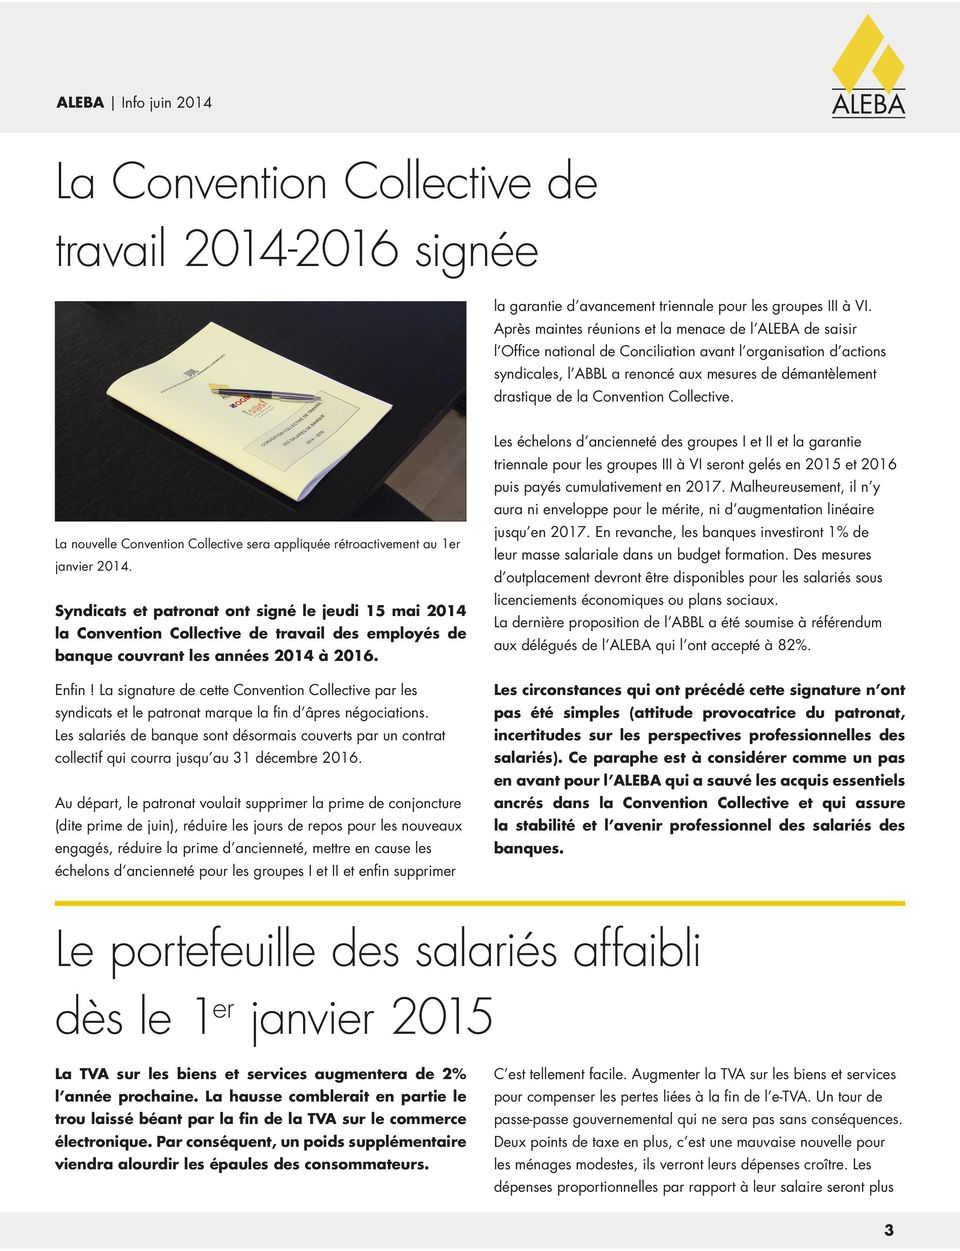 Convention Collective. La nouvelle Convention Collective sera appliquée rétroactivement au 1er janvier 2014.